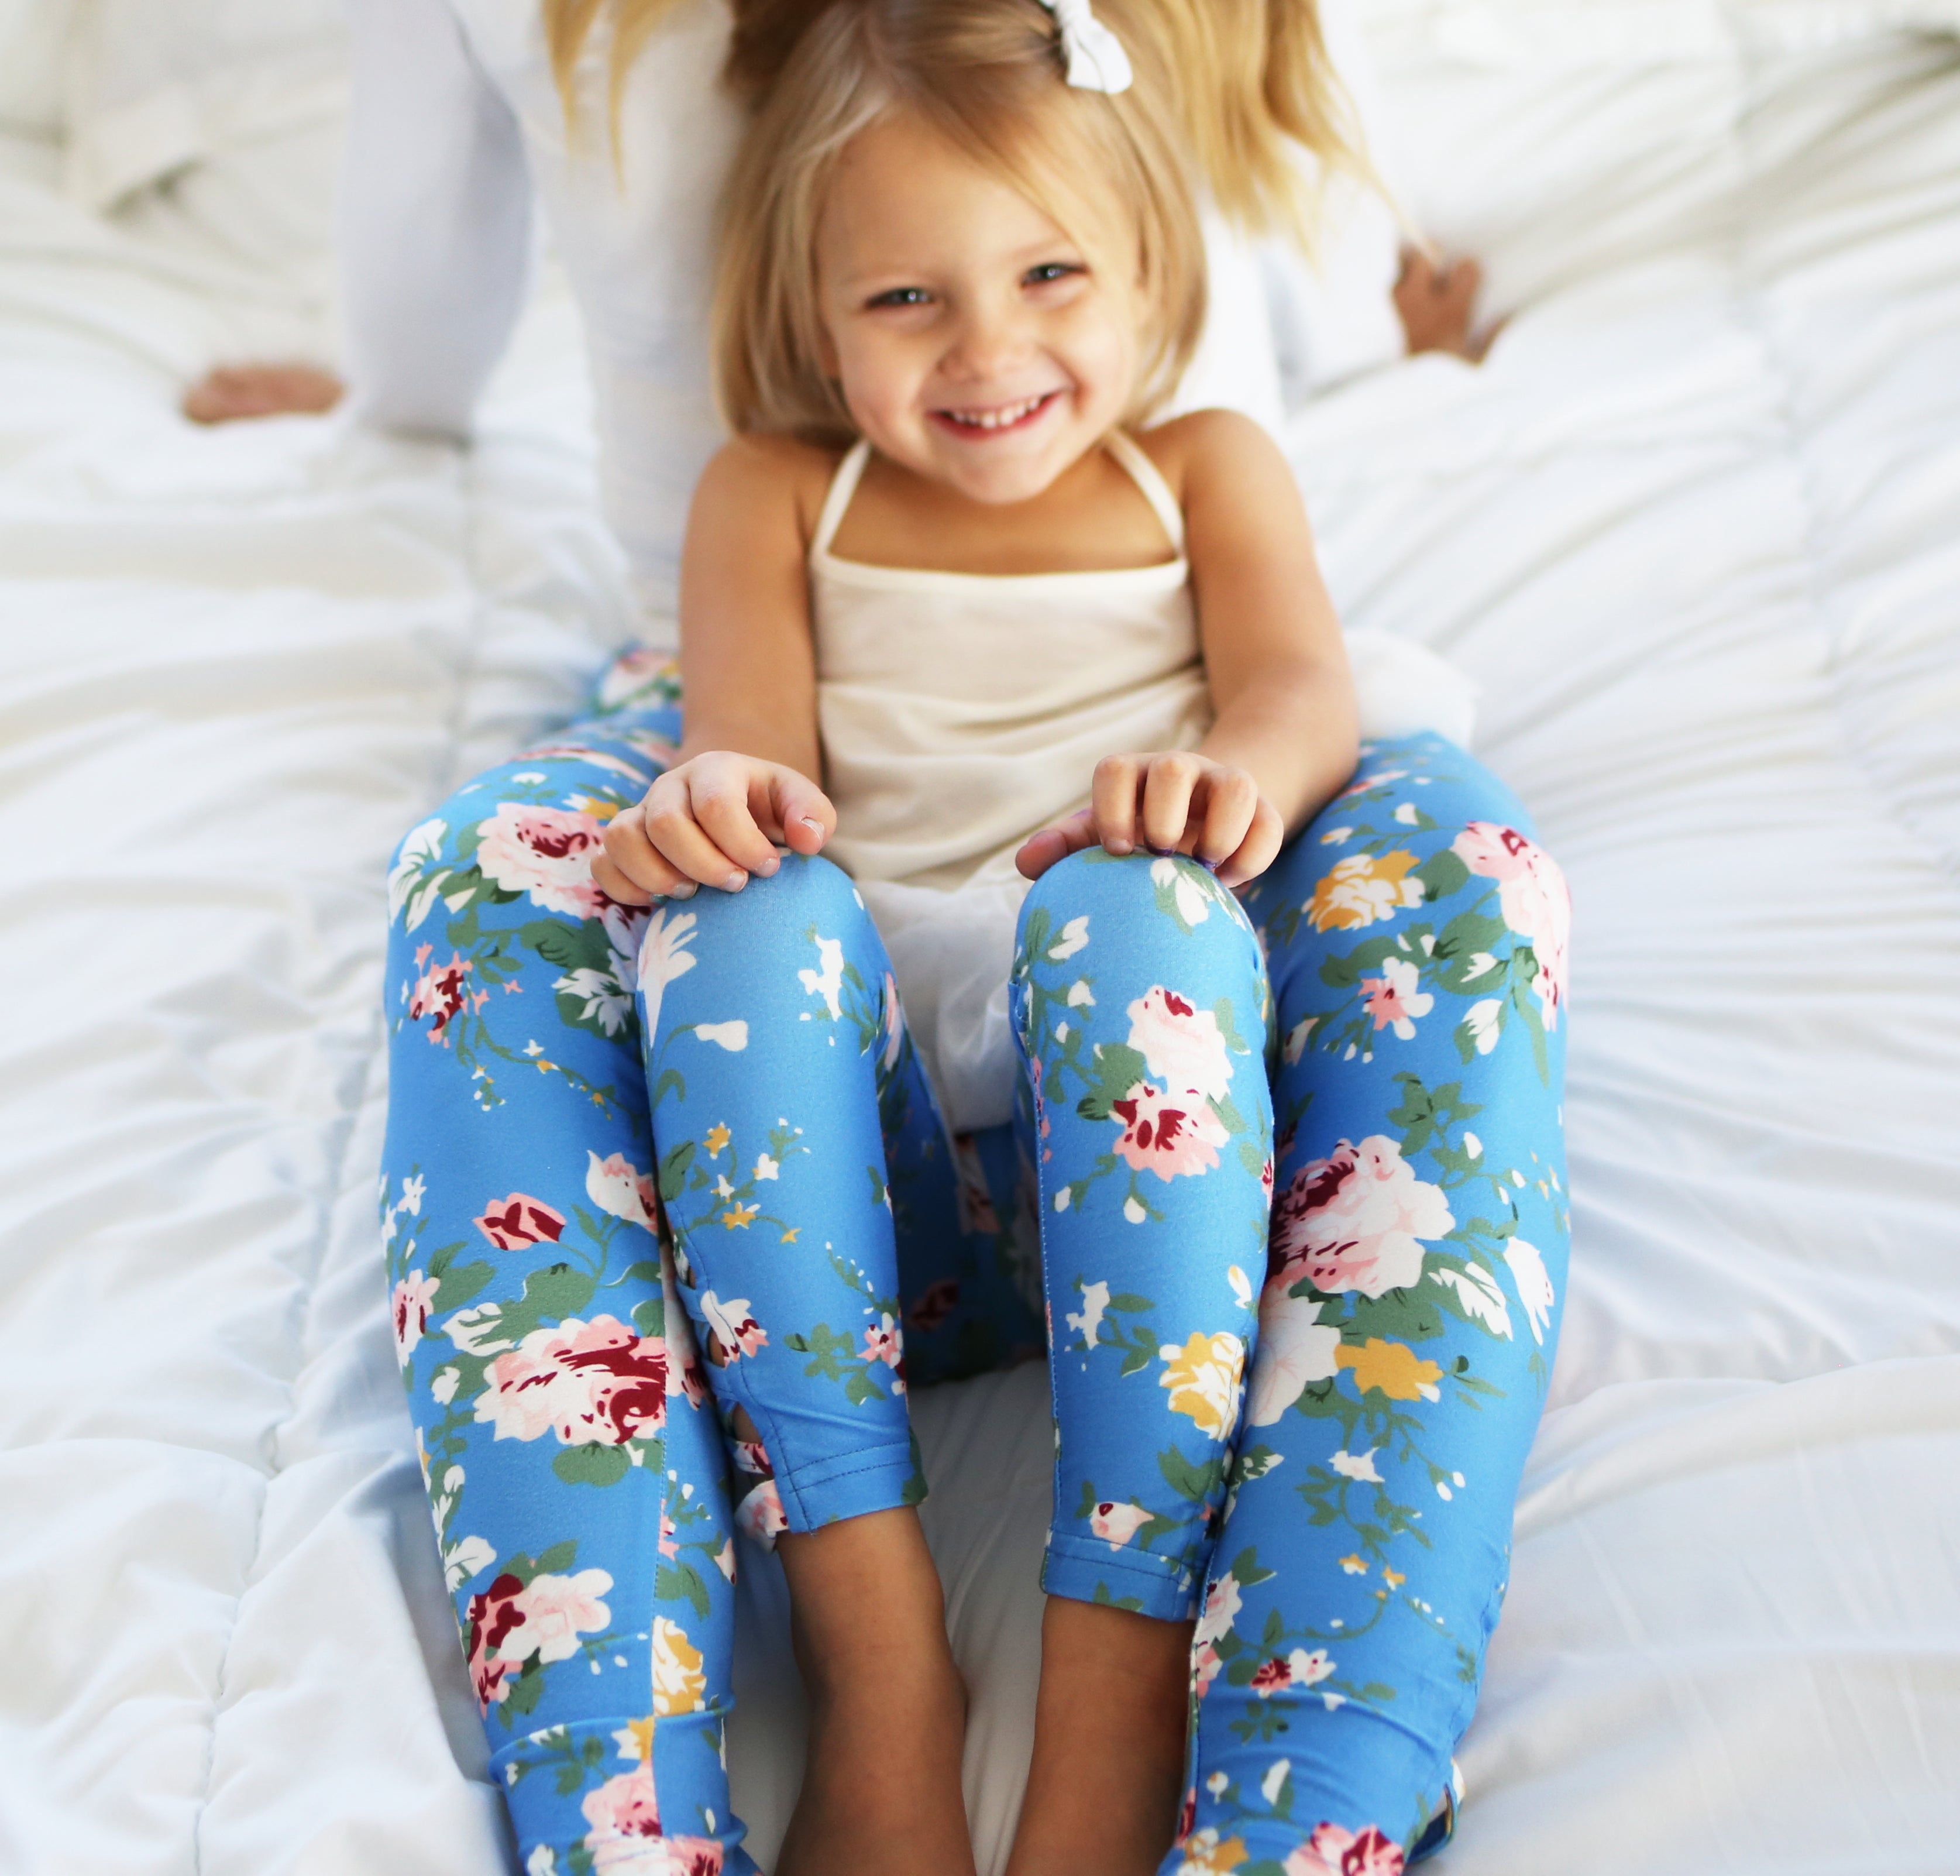 Mommy And Me Criss Cross Leggings - 9 Colors!